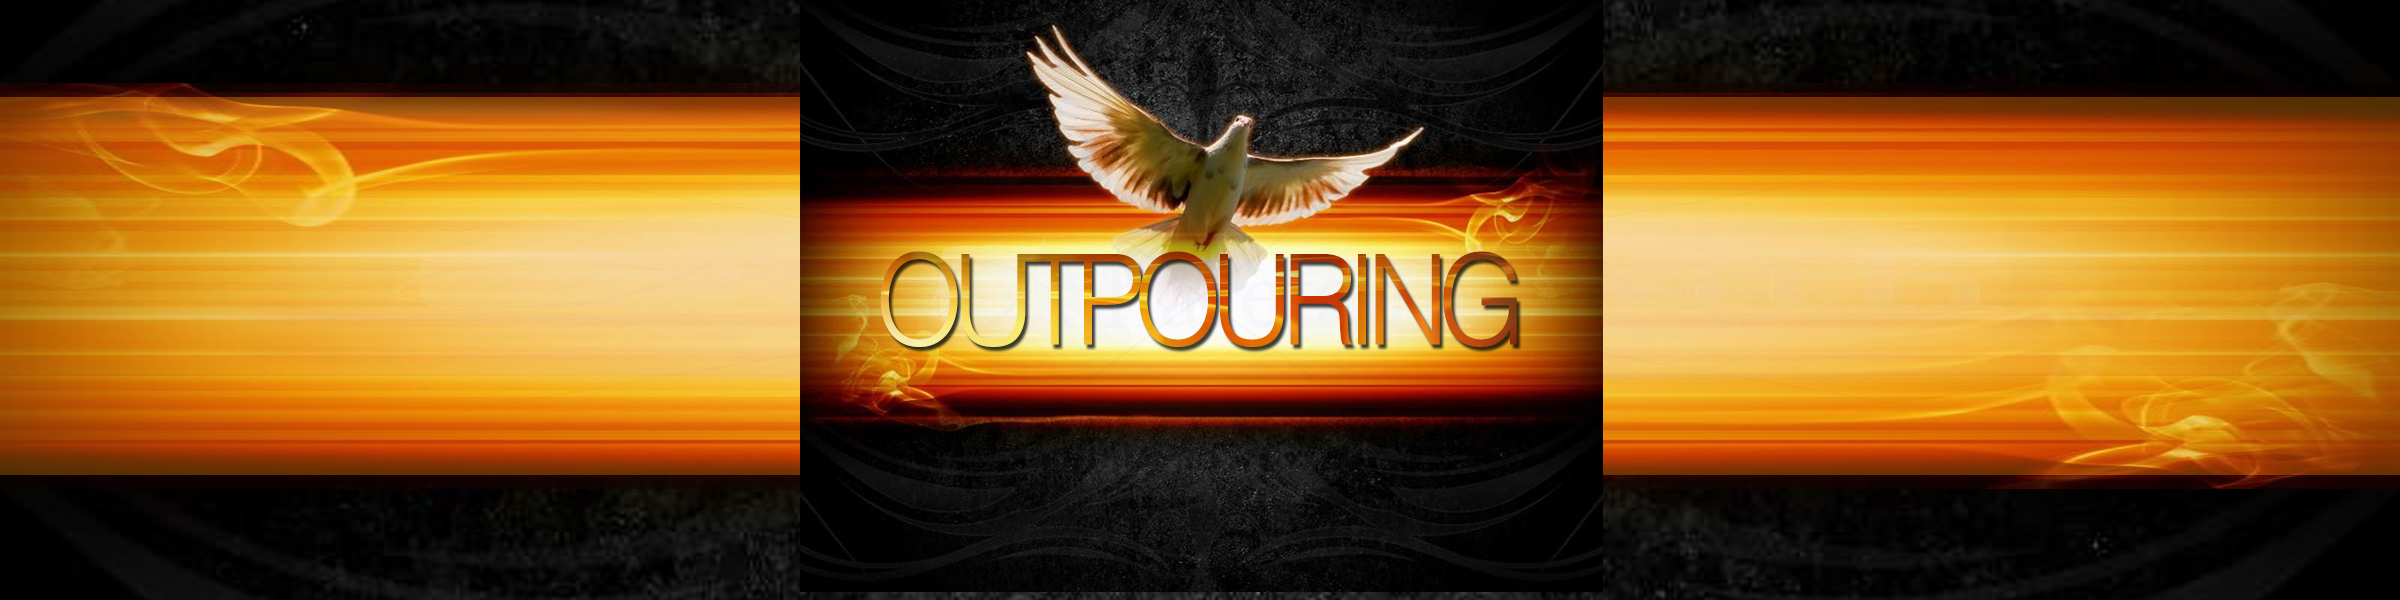 Outpouring Pt. 4